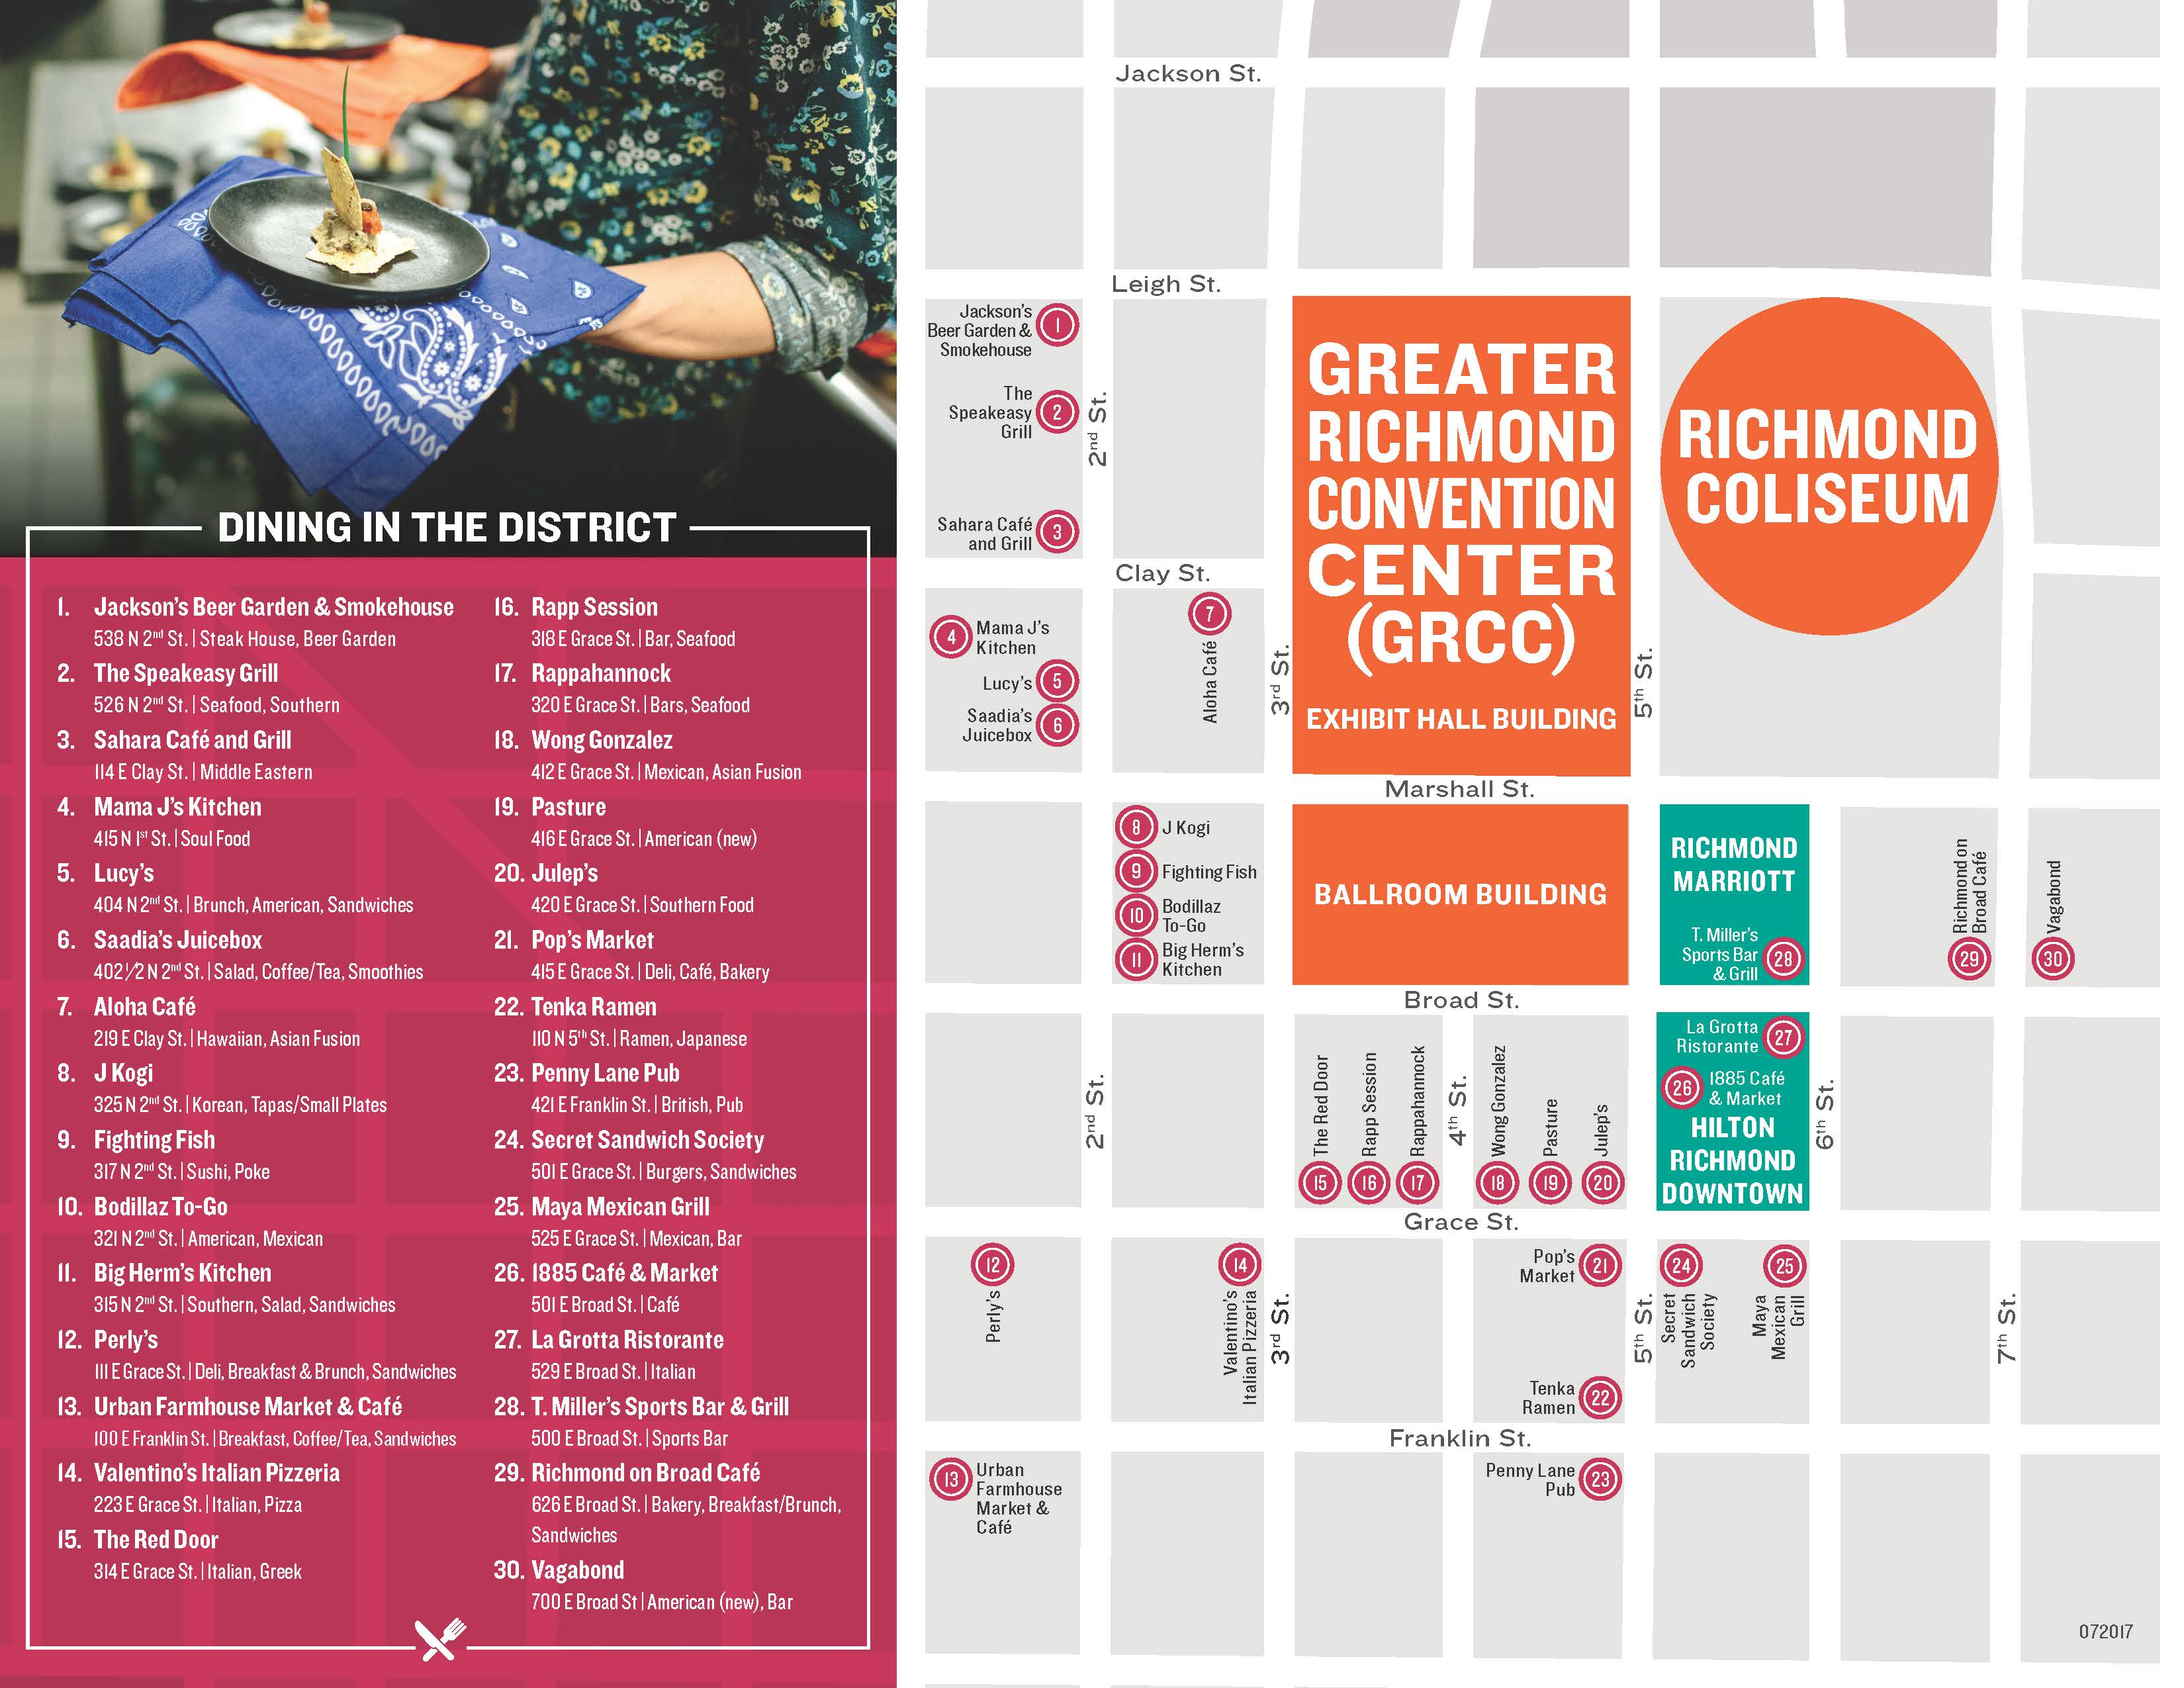 170828_richmondconventiondistrict_map.jpg